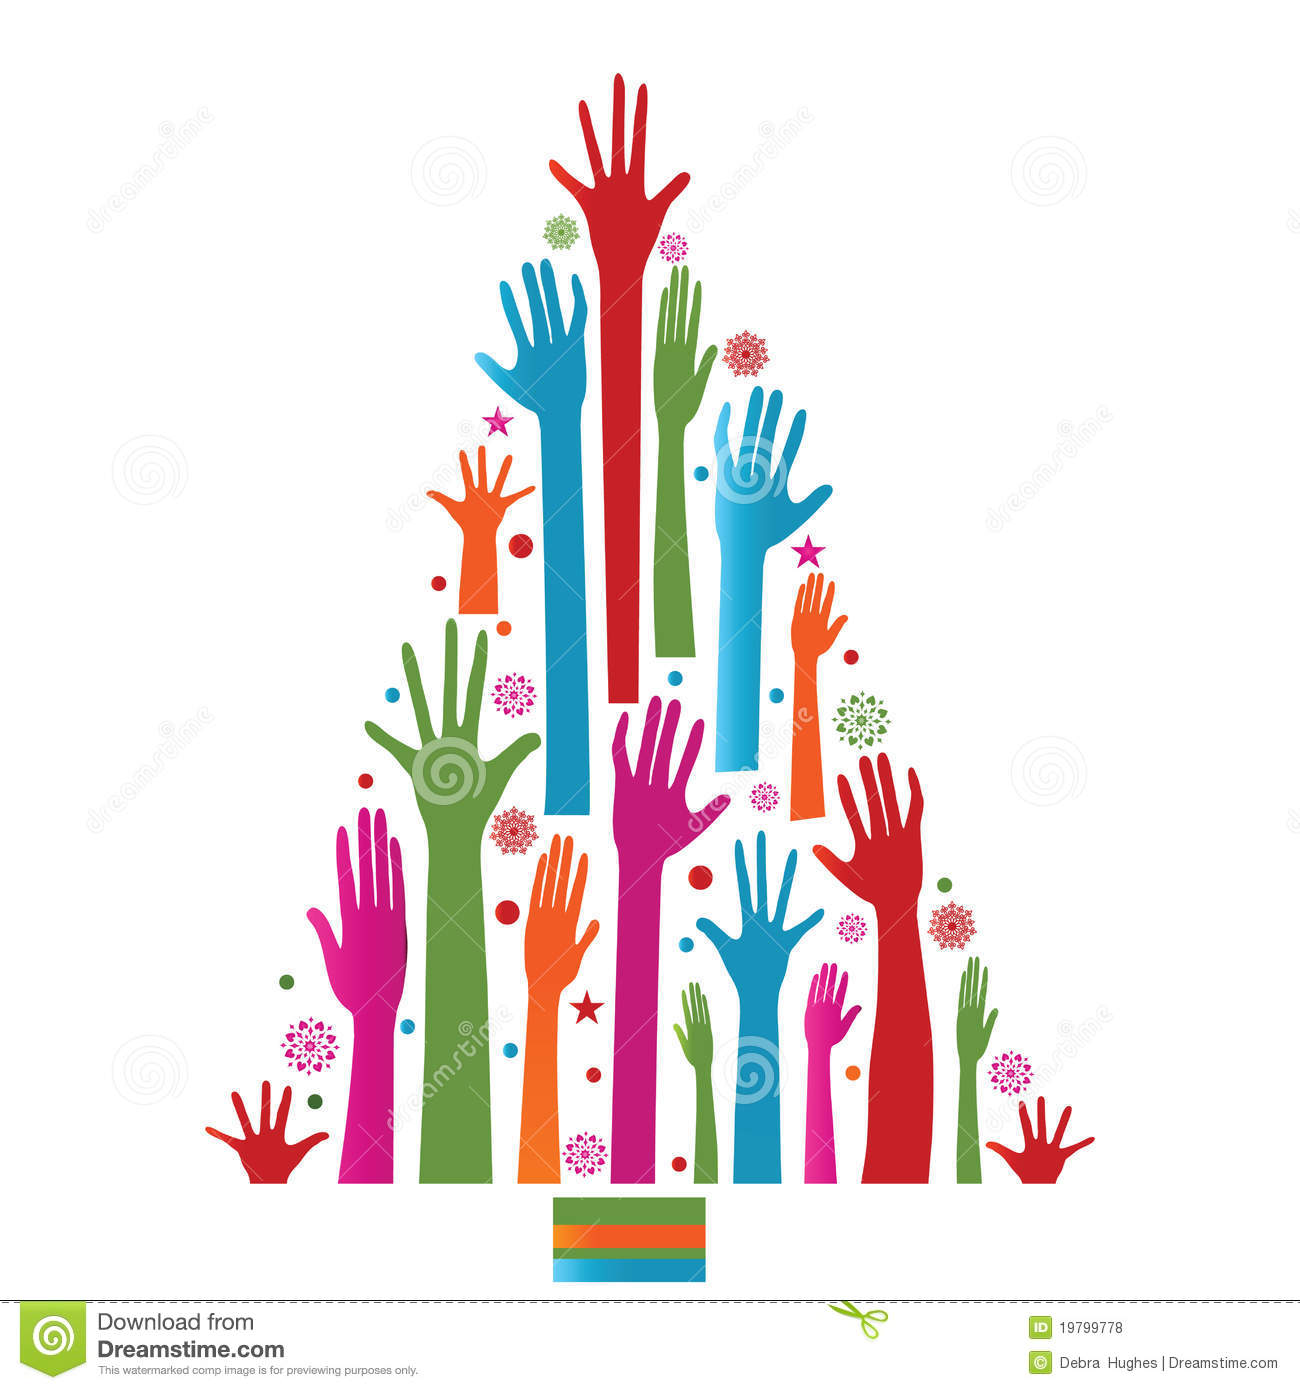 Colorful christmas tree of hands royalty free stock photos image - Colorful Christmas Tree Of Hands Royalty Free Stock Photos